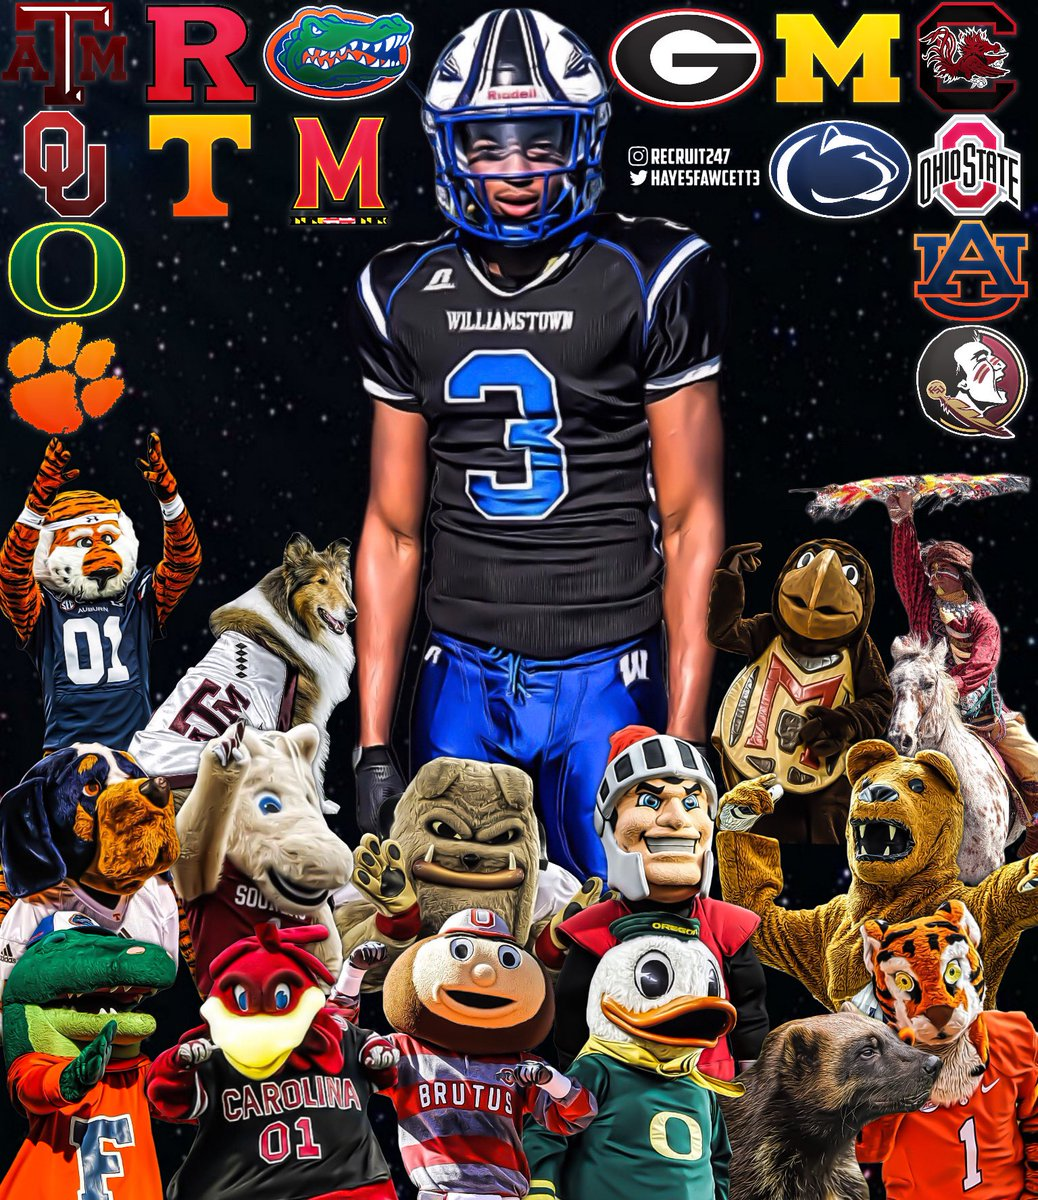 BREAKING: 5 🌟 Safety Keon Sabb (2022)has just cut his 3️⃣2️⃣Offer List down to 1️⃣5️⃣ Schools The 6'3 195 Prospect from Williamstown, NJ is ranked #8 Nationally, the #1 Safety, and #1 in New Jersey according to the Top247 Rankings